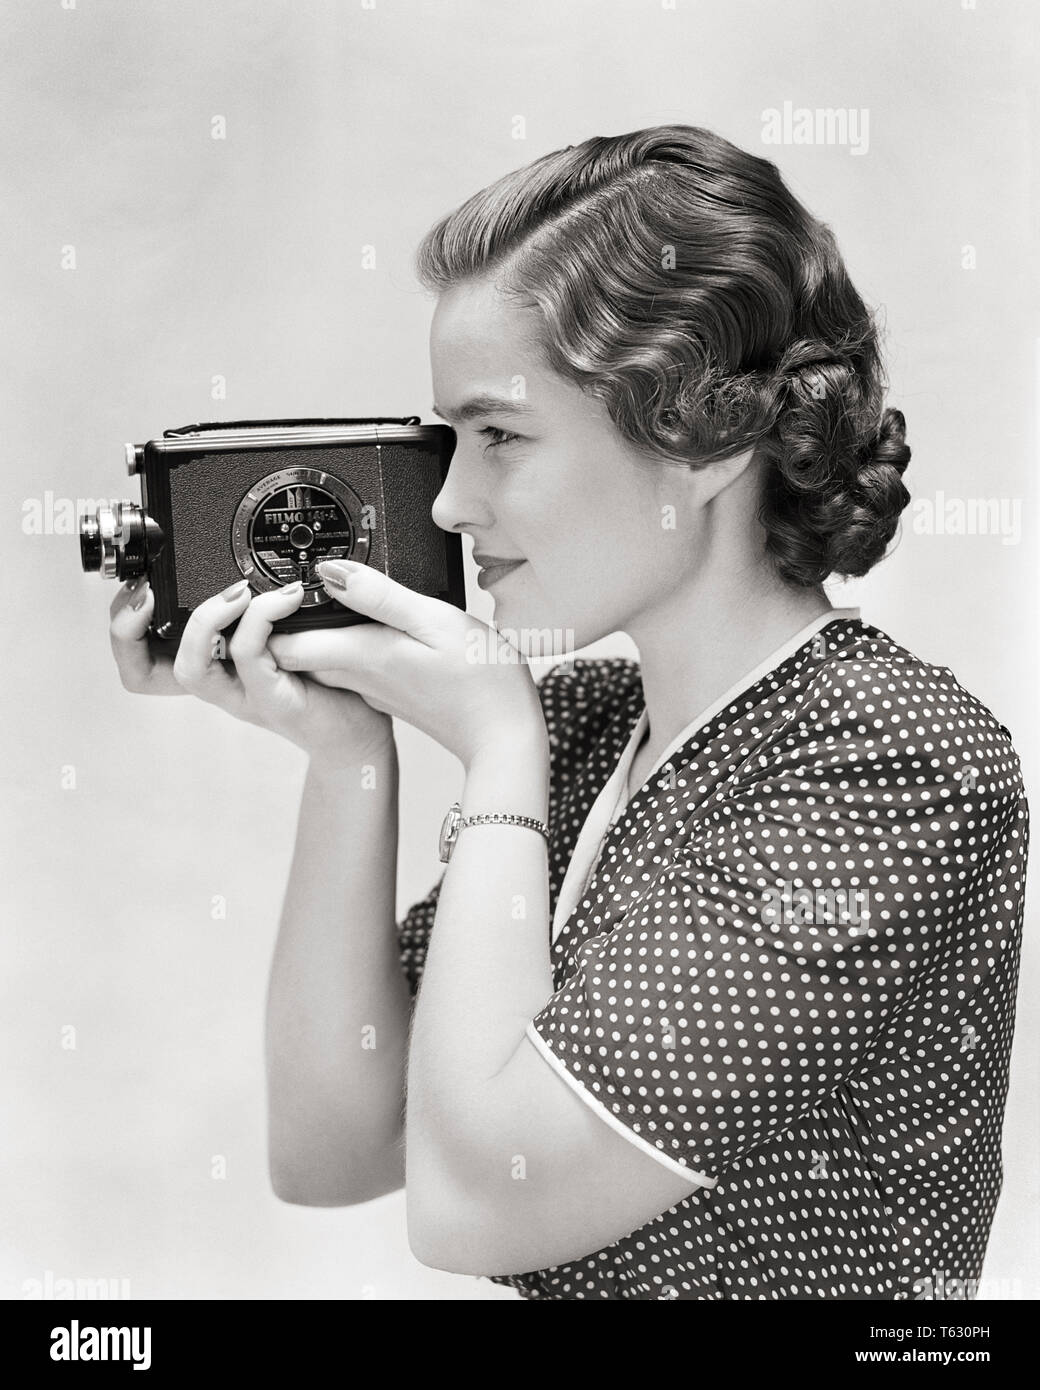 1930s PROFILE OF YOUNG WOMAN USING A 8MM HOME MOVIE CAMERA - u399 HAR001 HARS RECORDING B&W SKILL ACTIVITY AMUSEMENT DISCOVERY HOBBY LEISURE INTEREST HOBBIES KNOWLEDGE RECREATION PASTIME PHOTOGRAPHING PLEASURE OF OPPORTUNITY USING CONCEPTUAL STYLISH 8MM CREATIVITY RELAXATION YOUNG ADULT WOMAN AMATEUR BLACK AND WHITE CAUCASIAN ETHNICITY ENJOYMENT HAR001 OLD FASHIONED - Stock Image